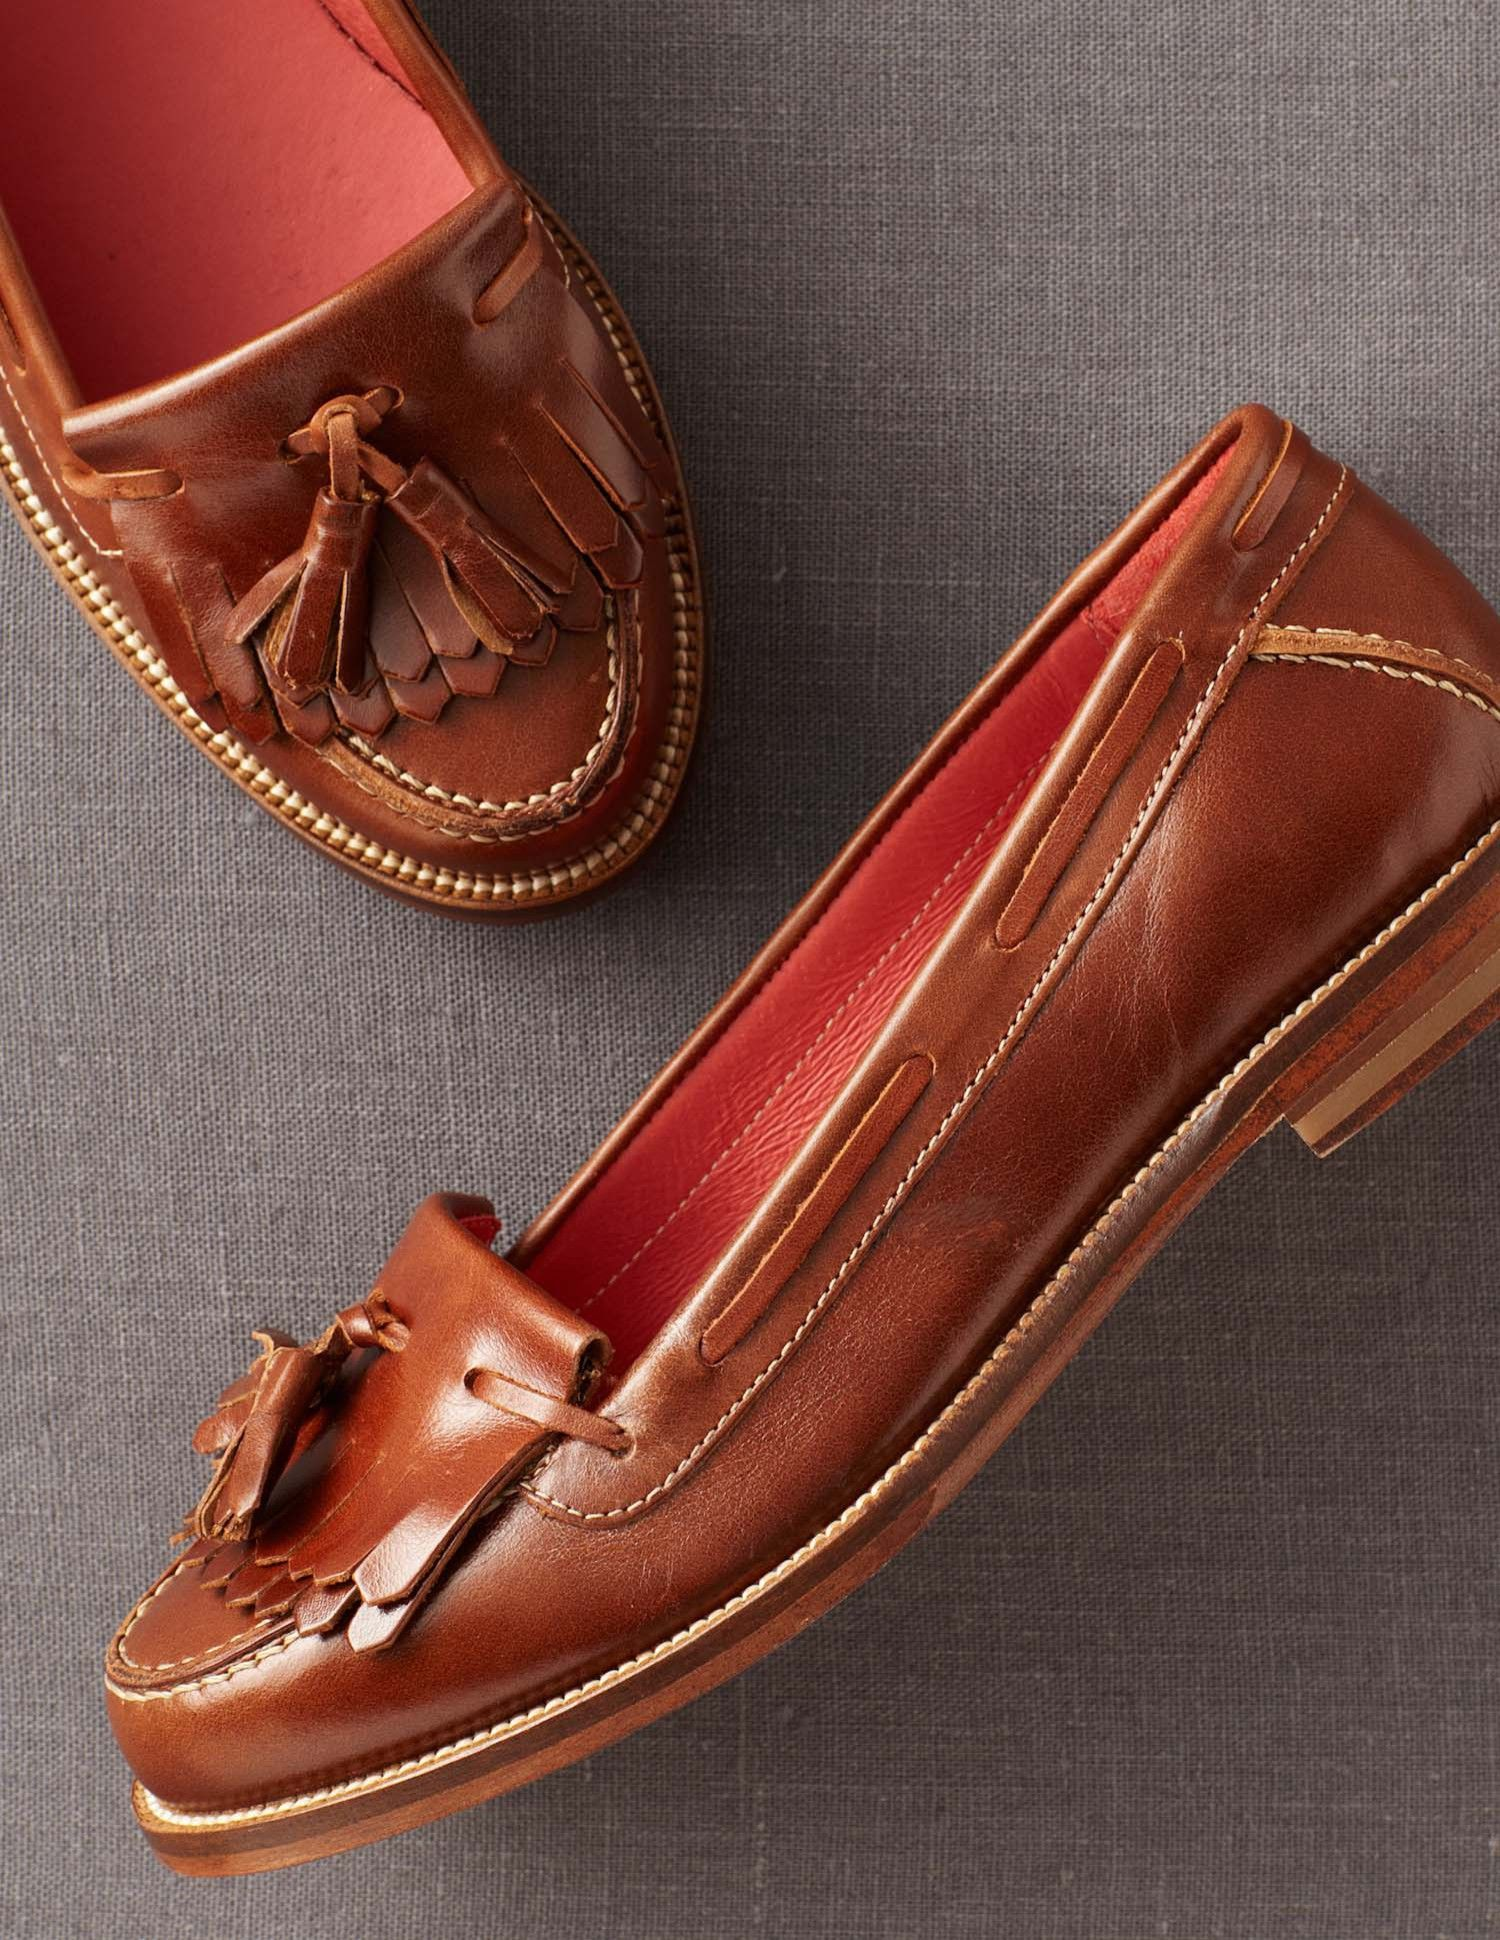 Why Is It That Women's Loafers Are So Darn Cute? Leather